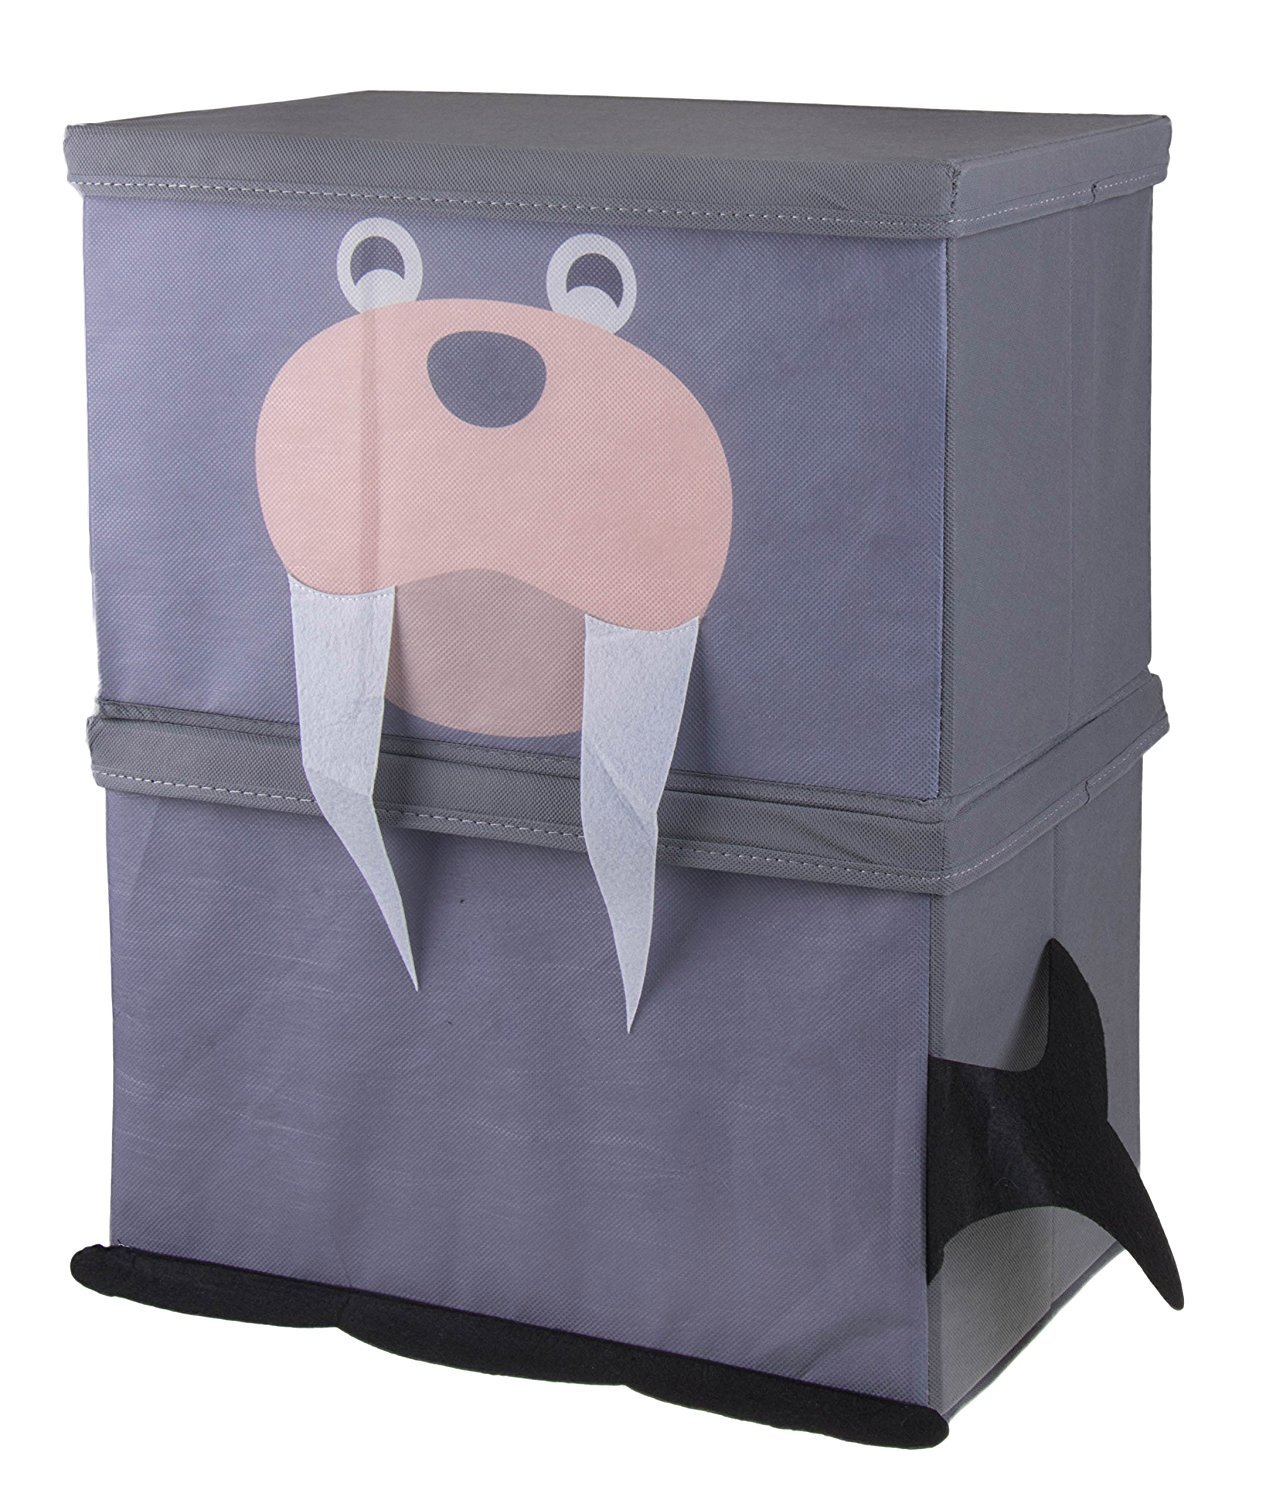 Cute Animal Collapsible Toy Storage Organizer Folding: Amazon.com: Cute Frog Stackable Storage Organizer By